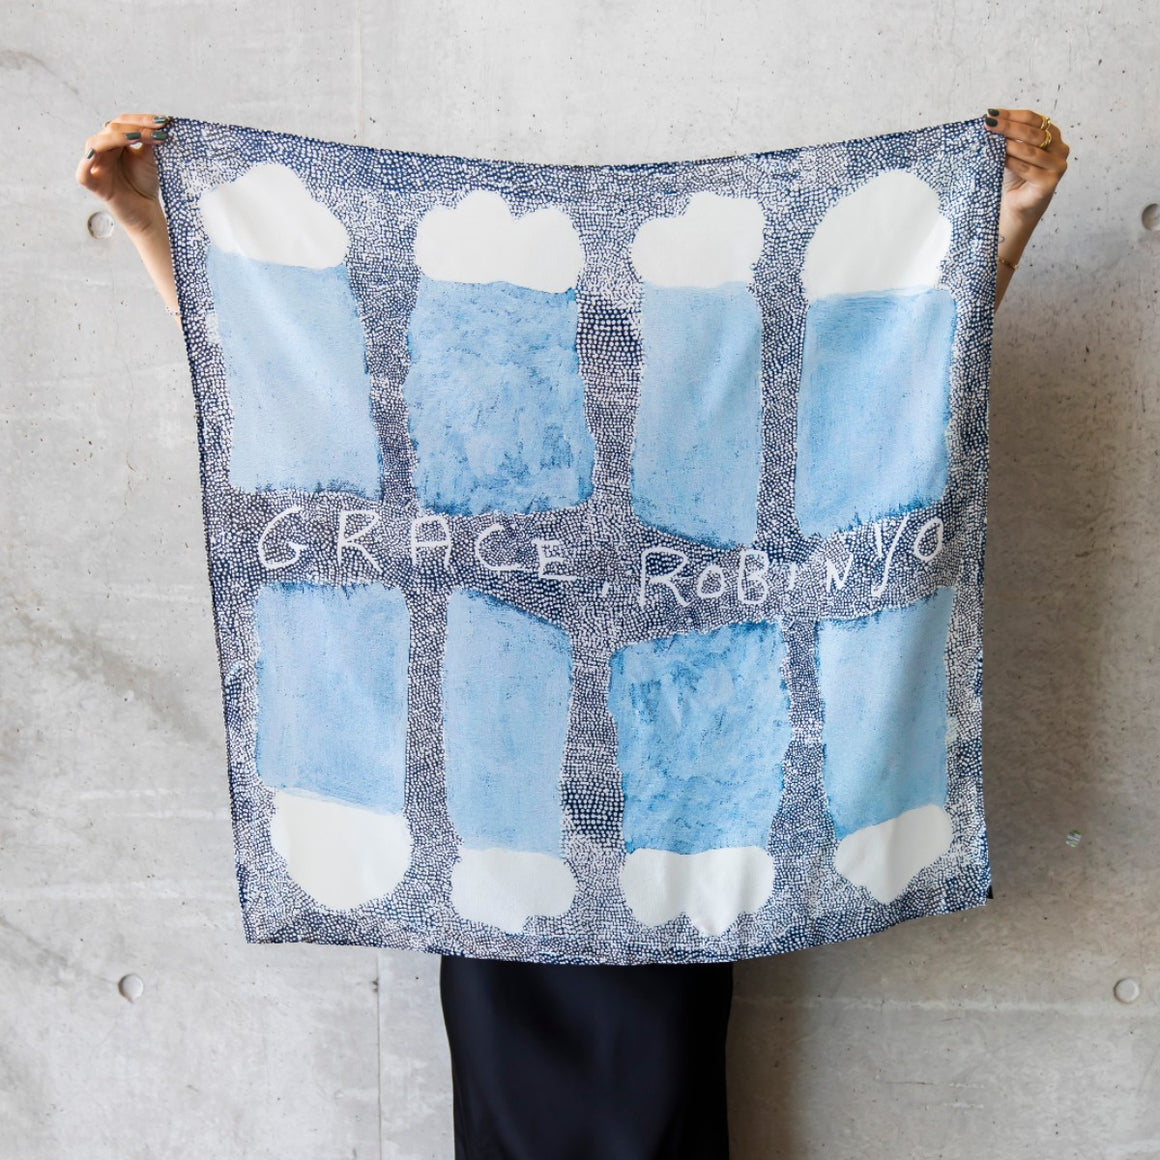 A square silk scarf is displayed by a woman, holding the top corners. The scarf feature the artwork Kwatye by Grace Robinya featuring clouds, rain and intricated dotwork in blue tones and white,